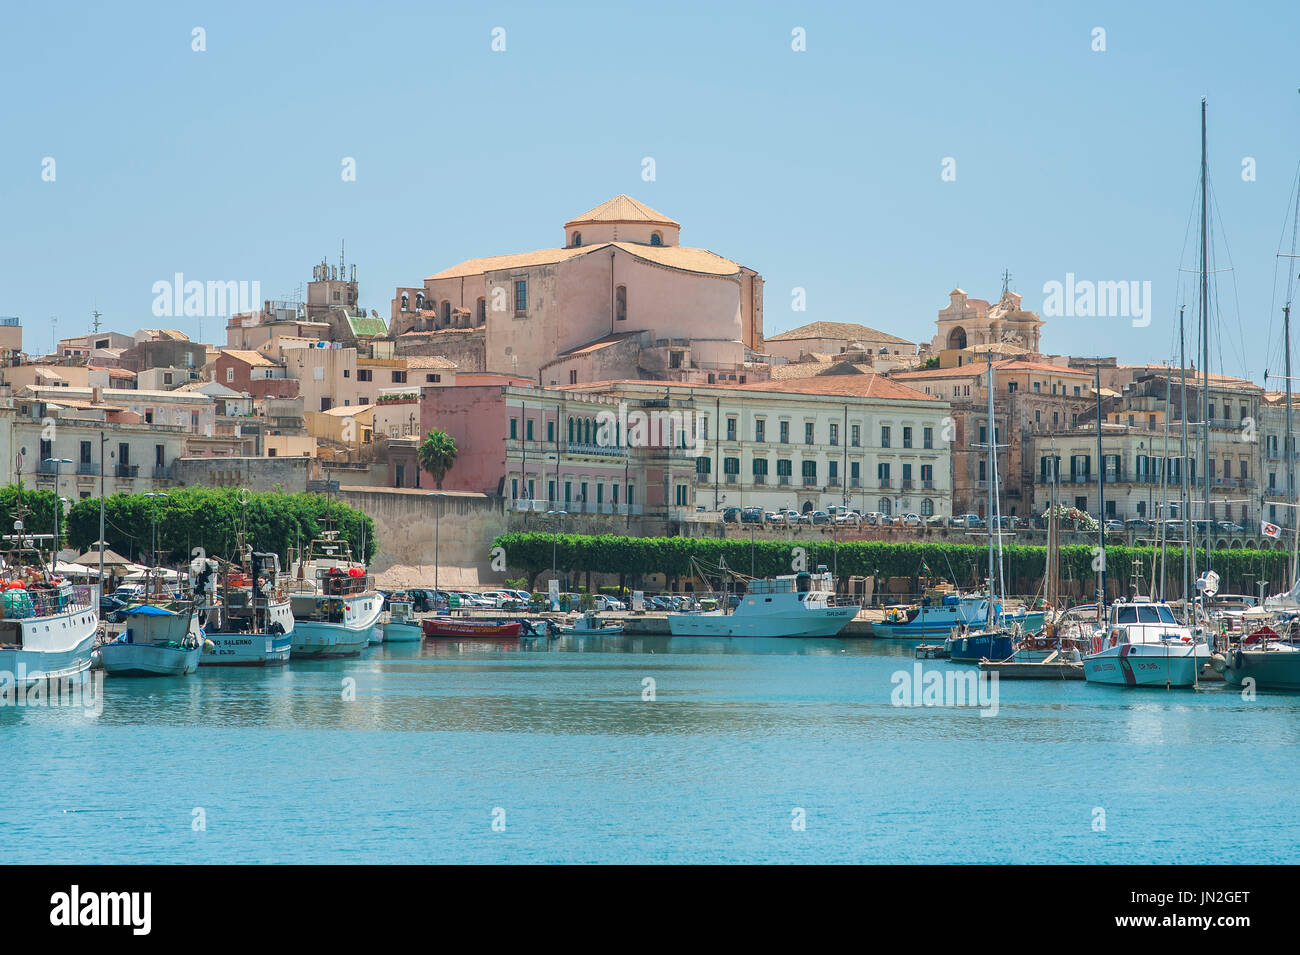 Sicily east coast, skyline of Ortigia island, part of the city of Syracuse, (Siracusa) in Sicily. - Stock Image